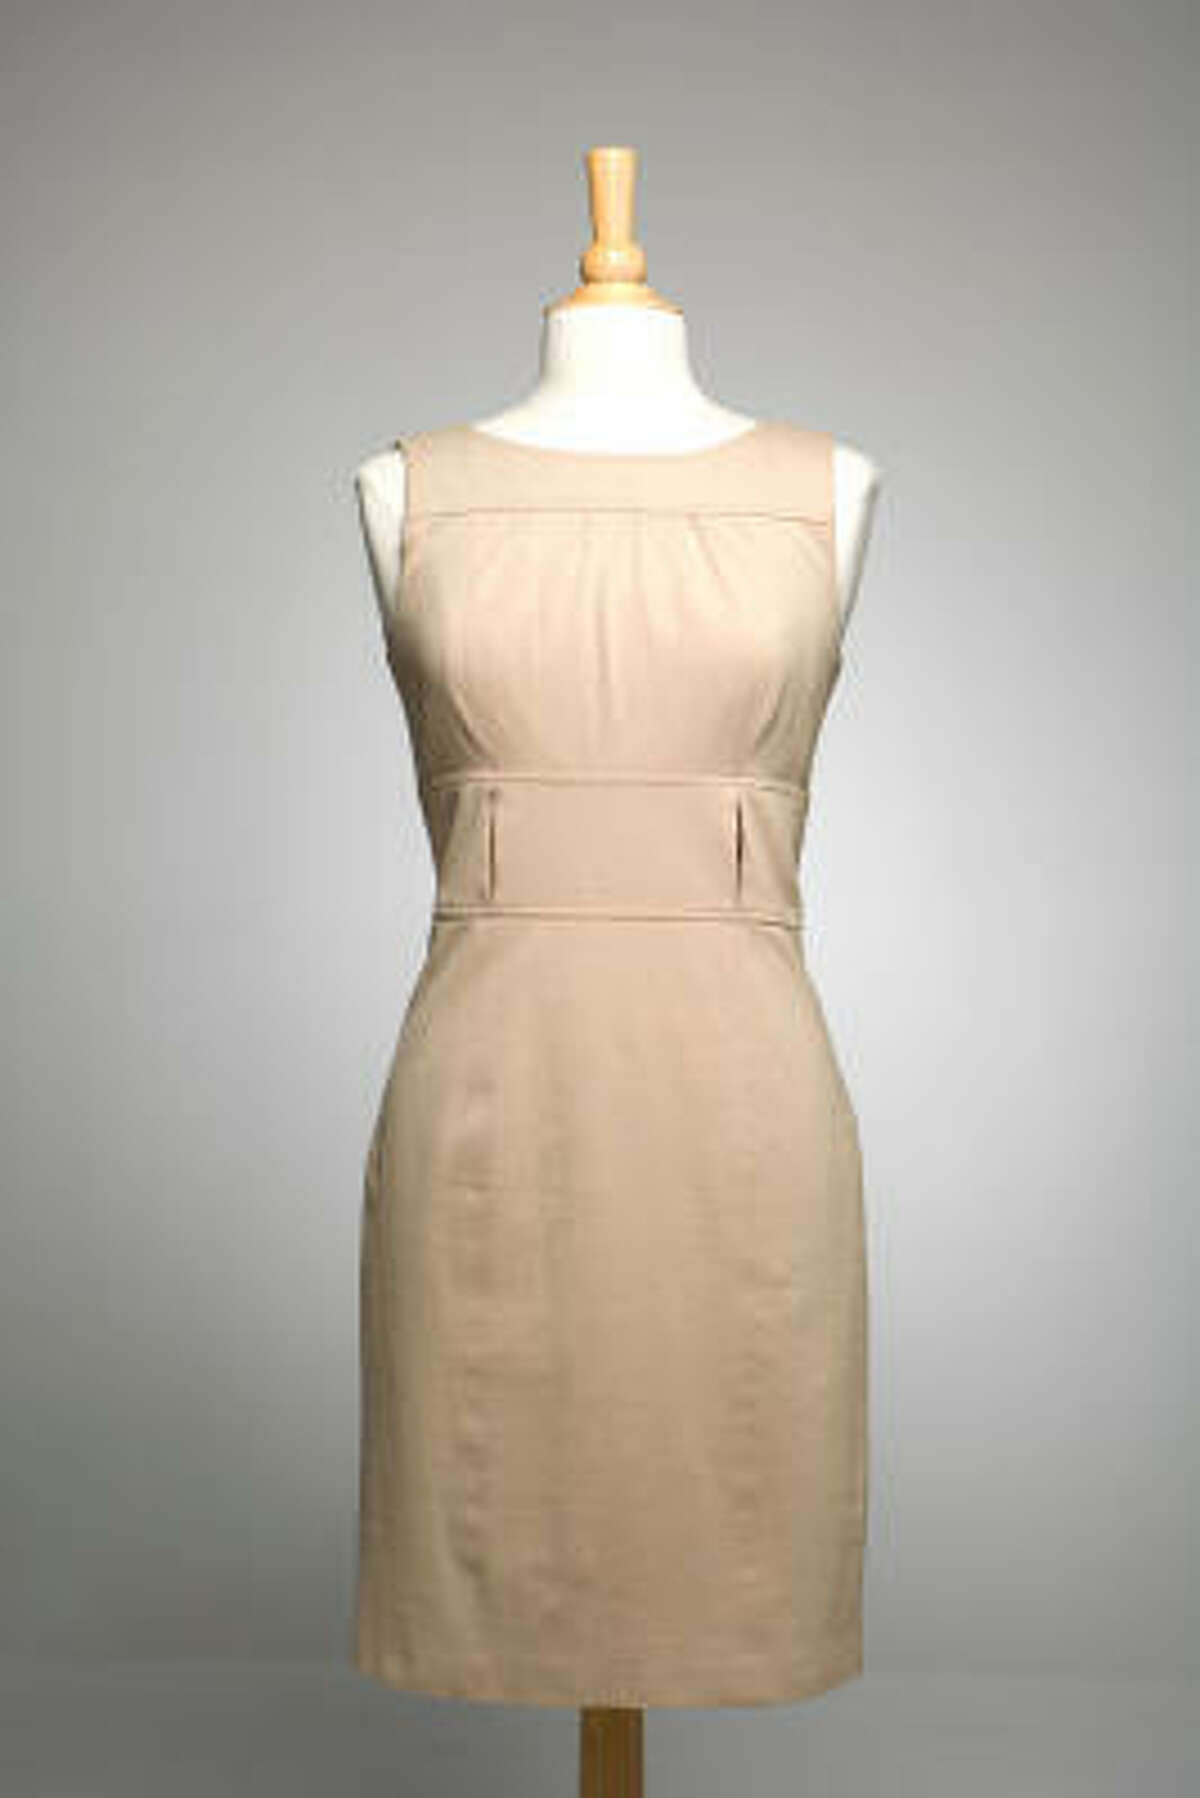 You can take this simple dress, add a few accessories and turn it into a whole new outfit.